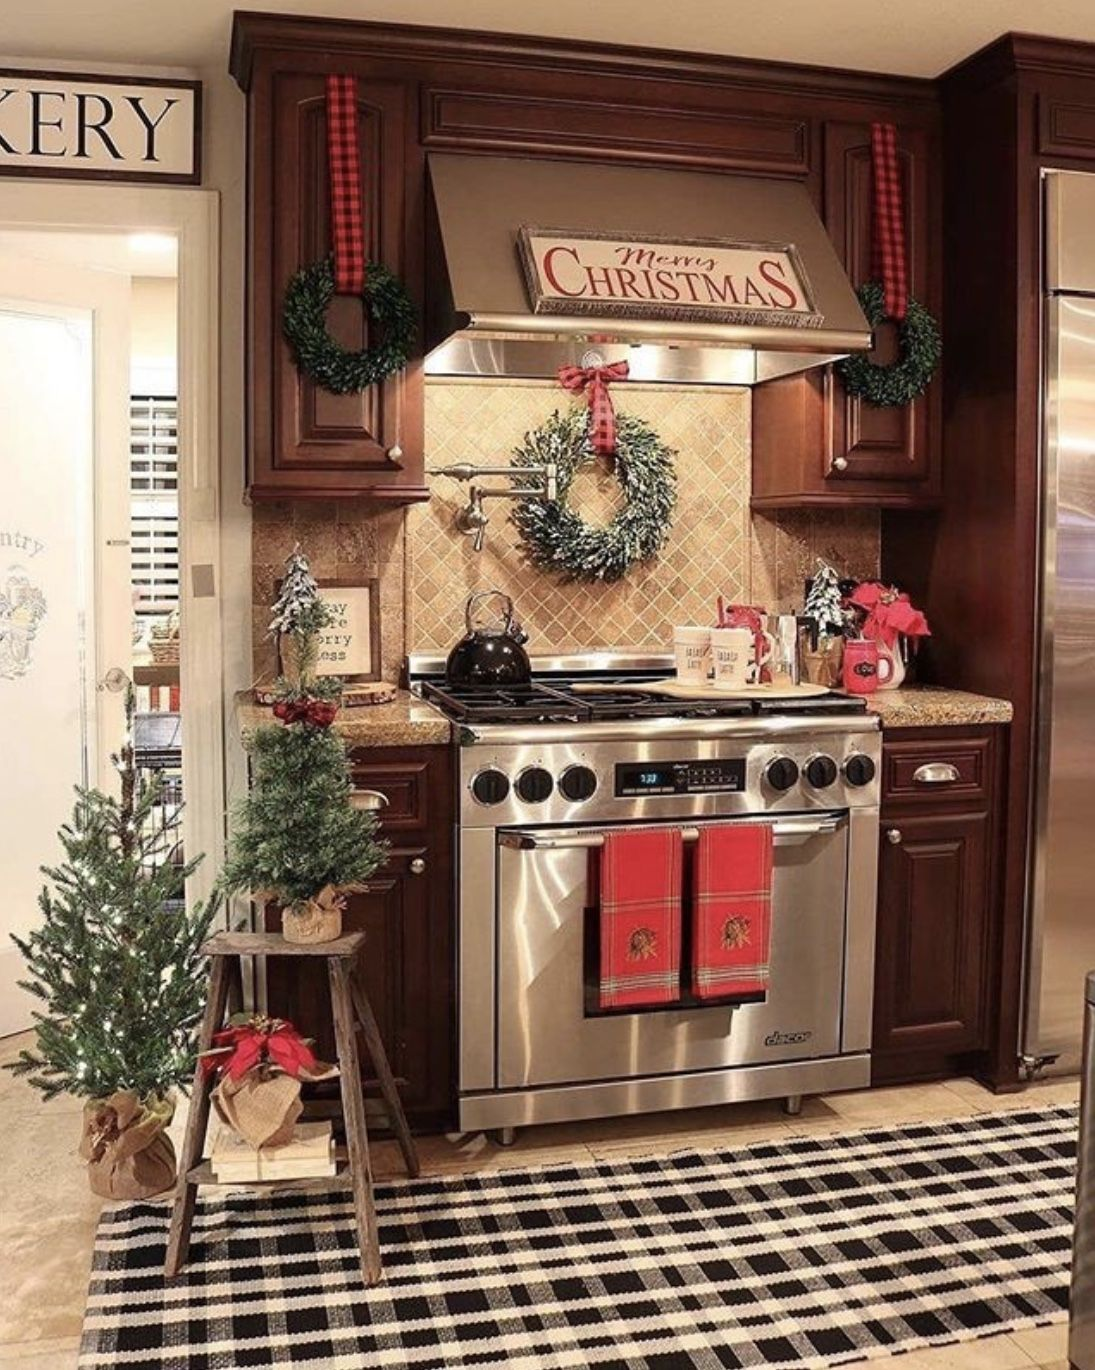 Kitchen Christmas Decorating In 2020 Christmas Kitchen Decor Farmhouse Christmas Decor Christmas Kitchen